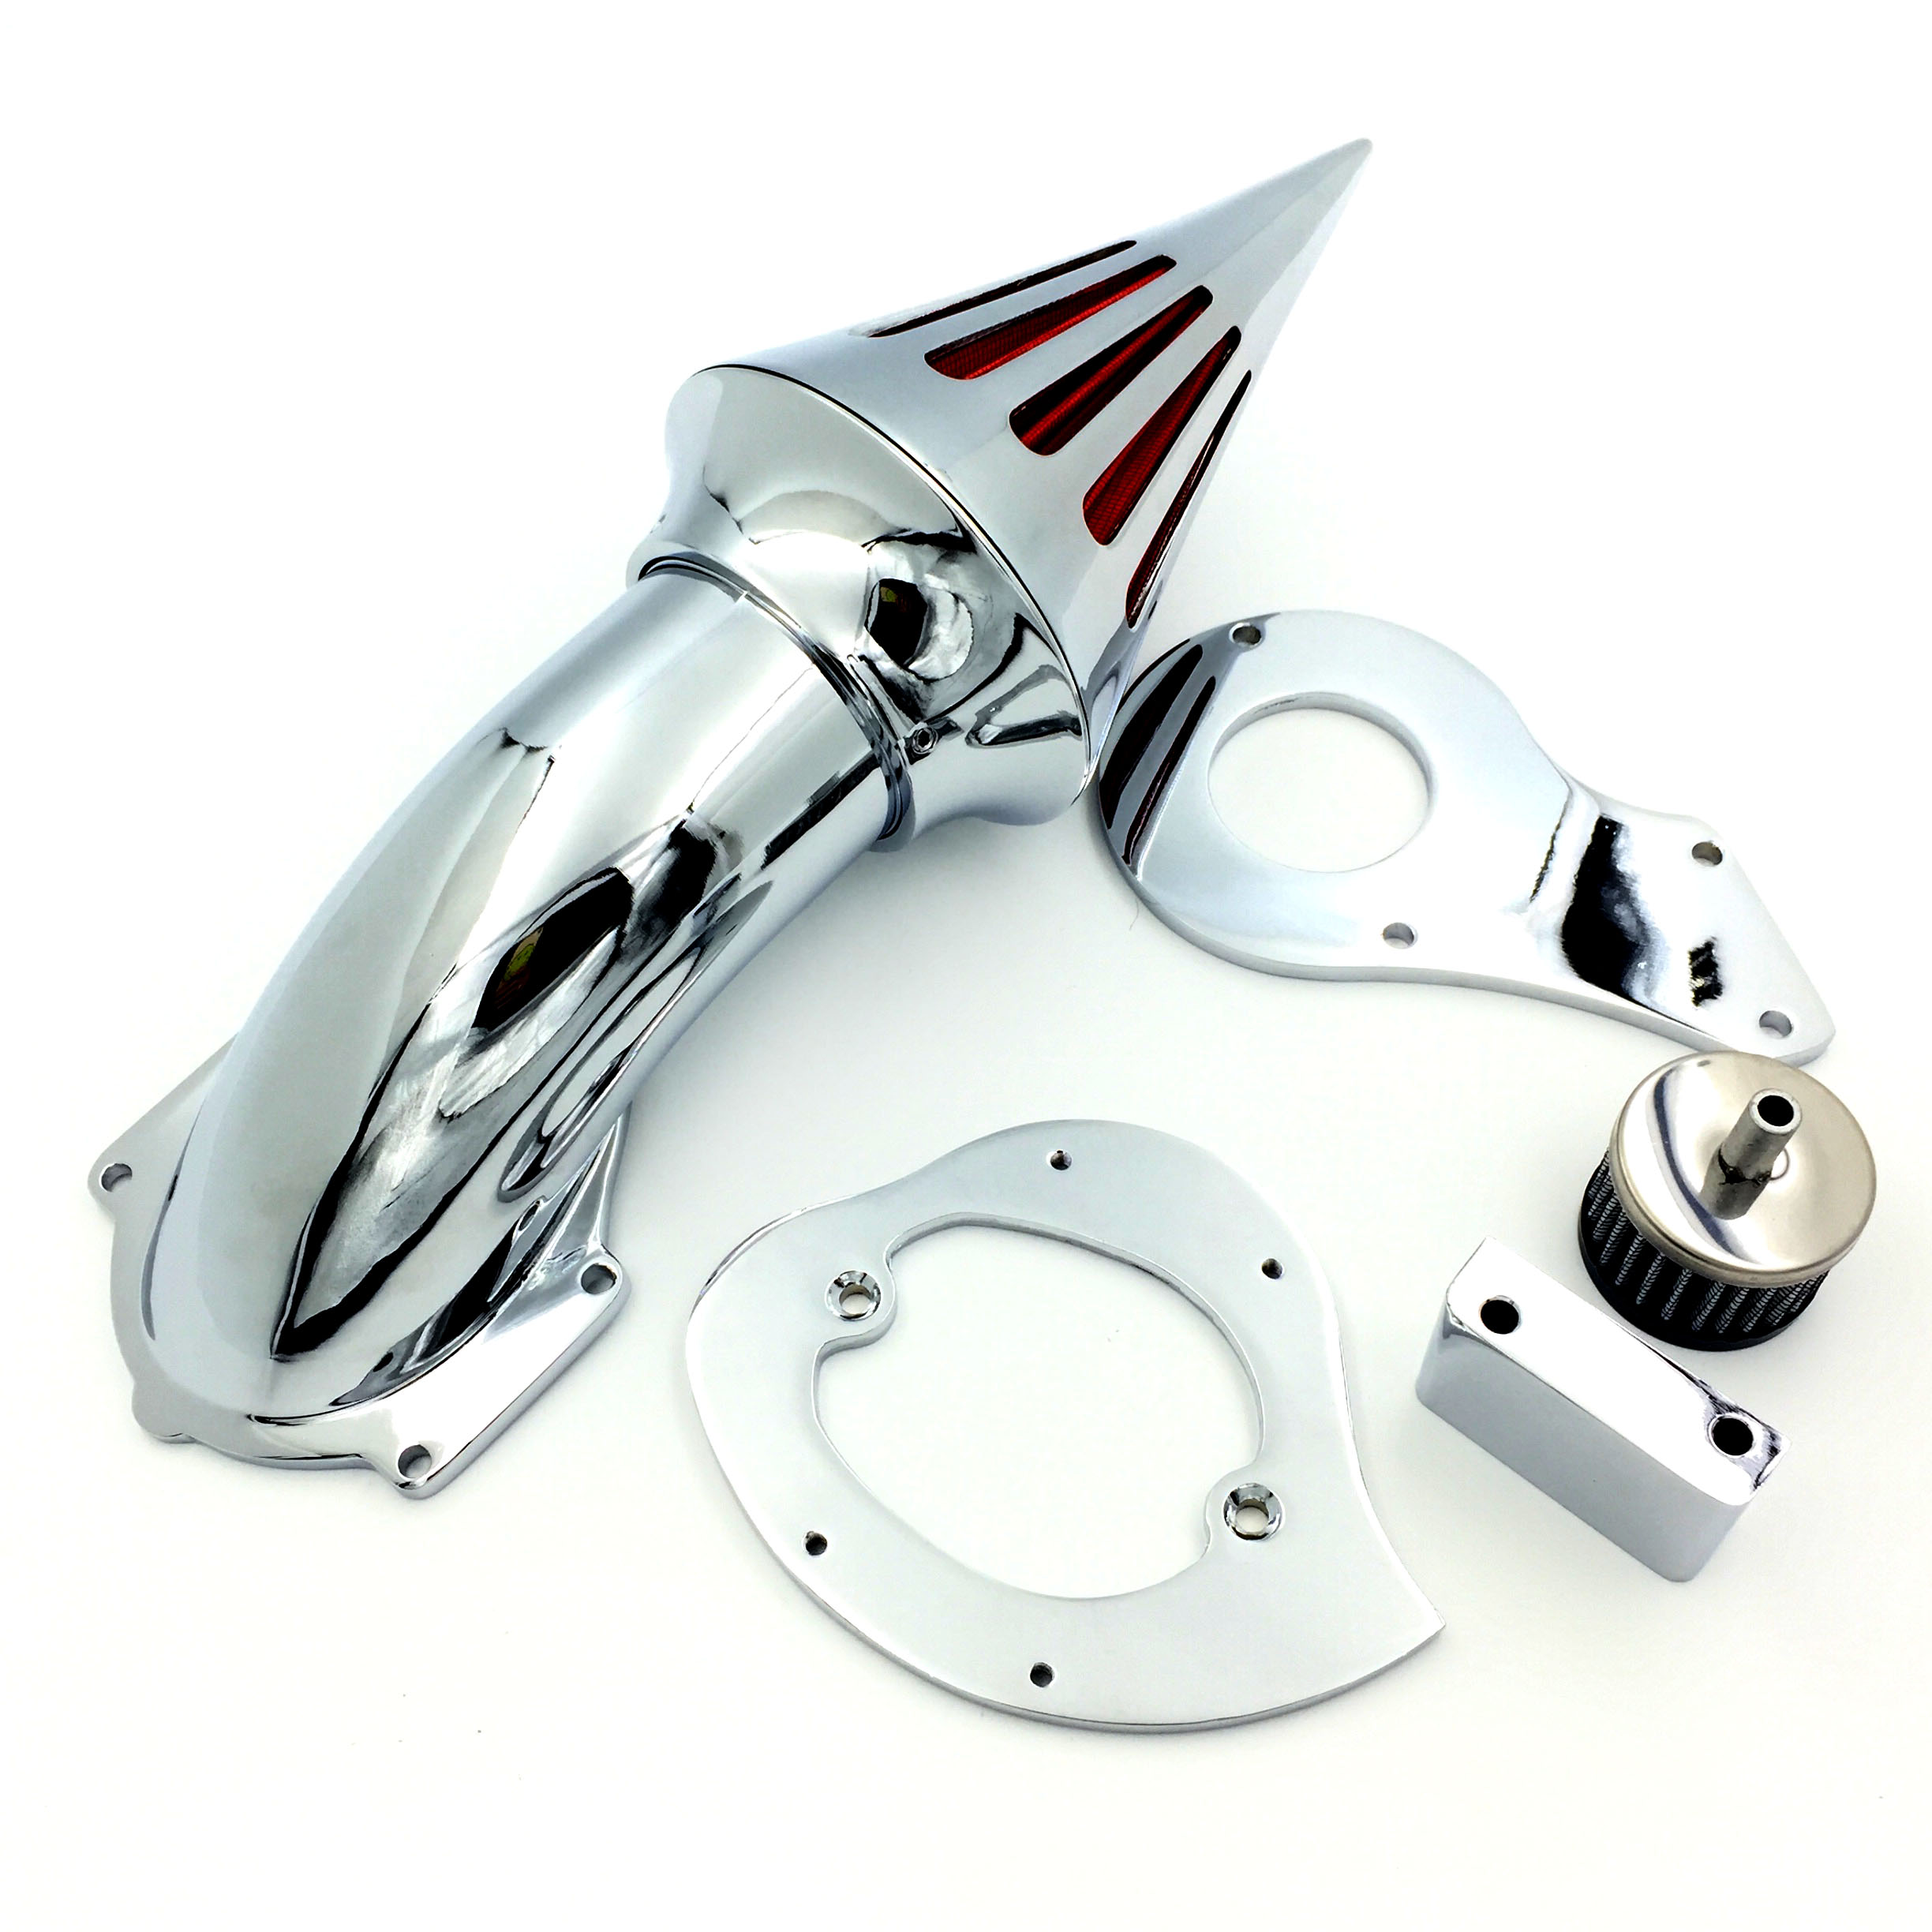 New spike air cleaner kits filter for 99 12 honda shadow 600 vlx600chrome